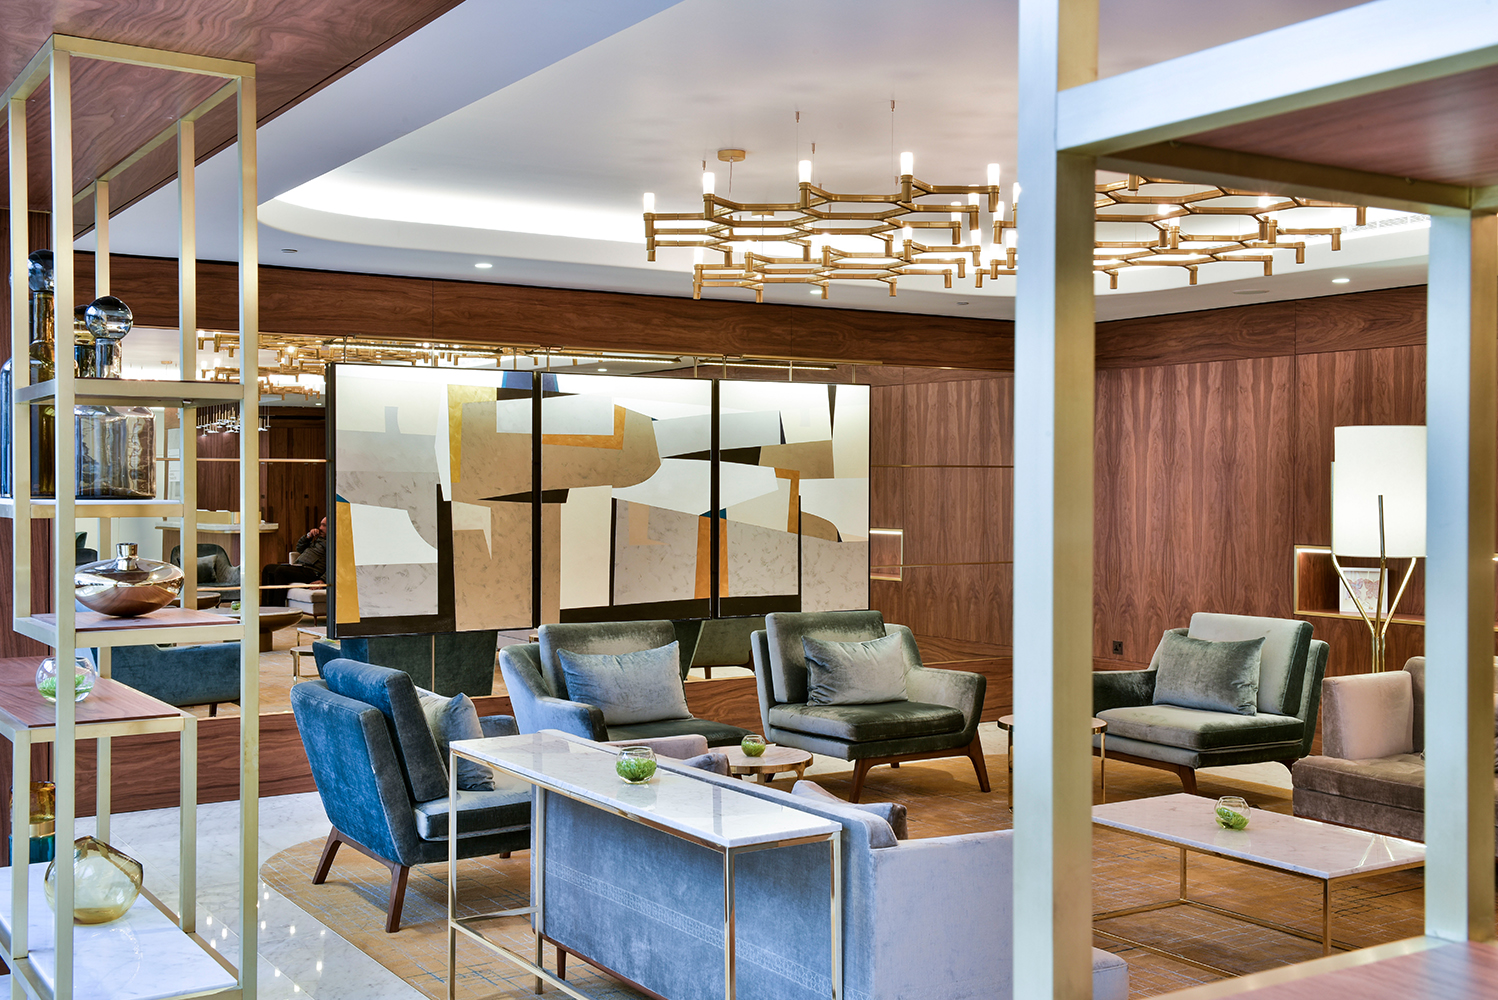 Royal Lancaster London completed its brand new design following an £80 million renovation.